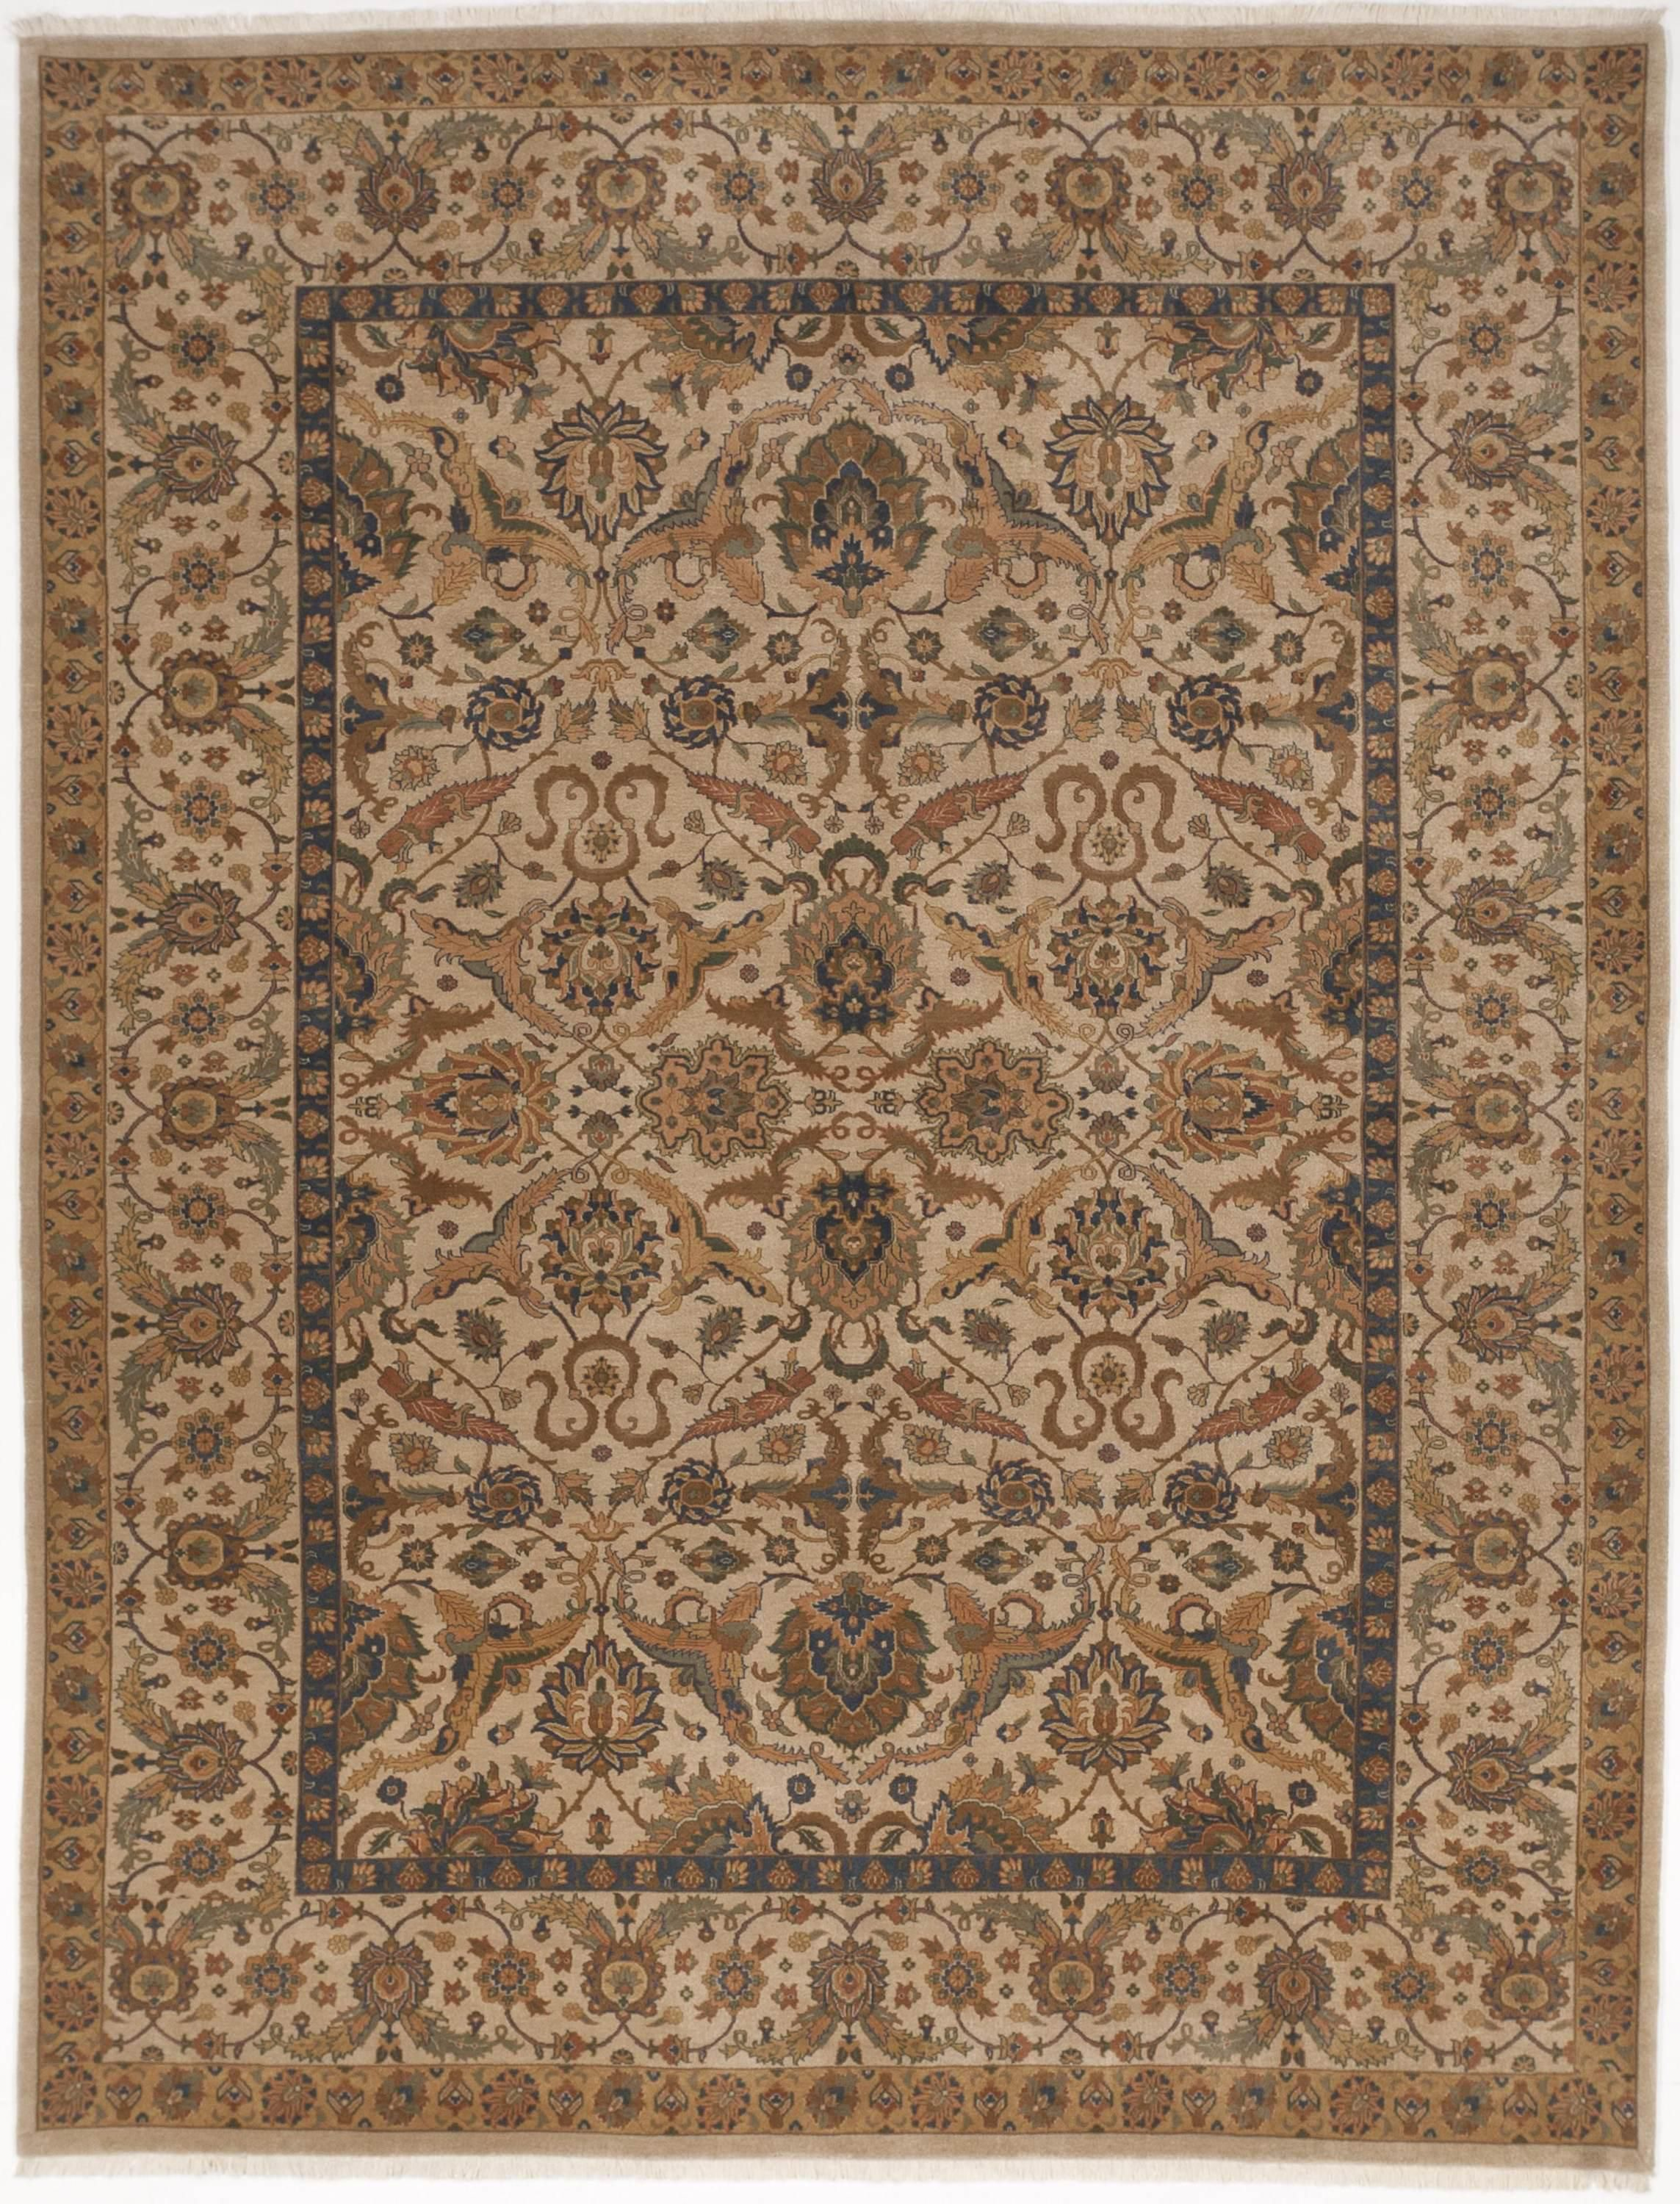 Indo Persian Hand Knotted Rug 9 2 X 12 Indian Rugs Pinterest